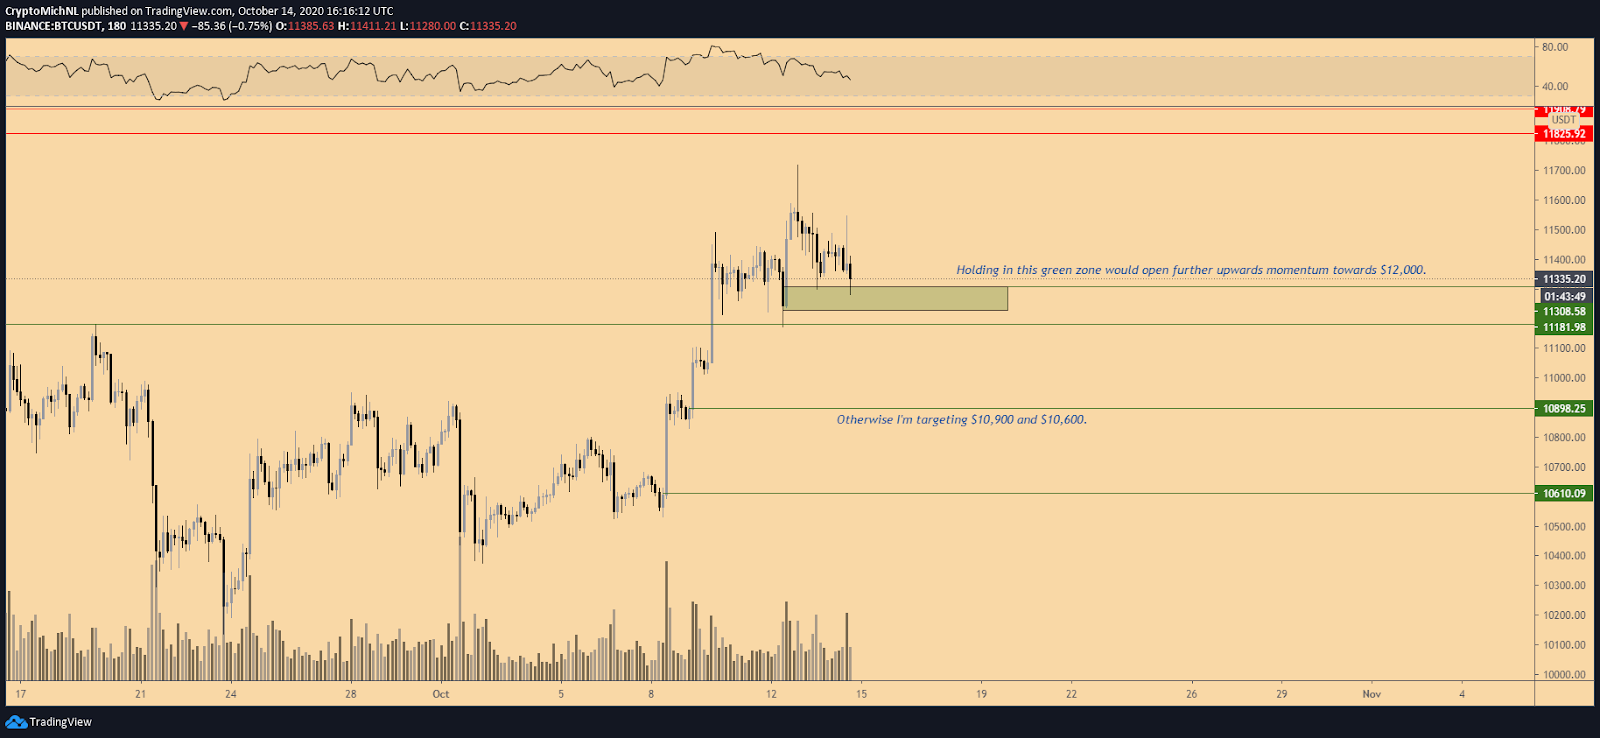 The 3-hour chart of Bitcoin with key support levels